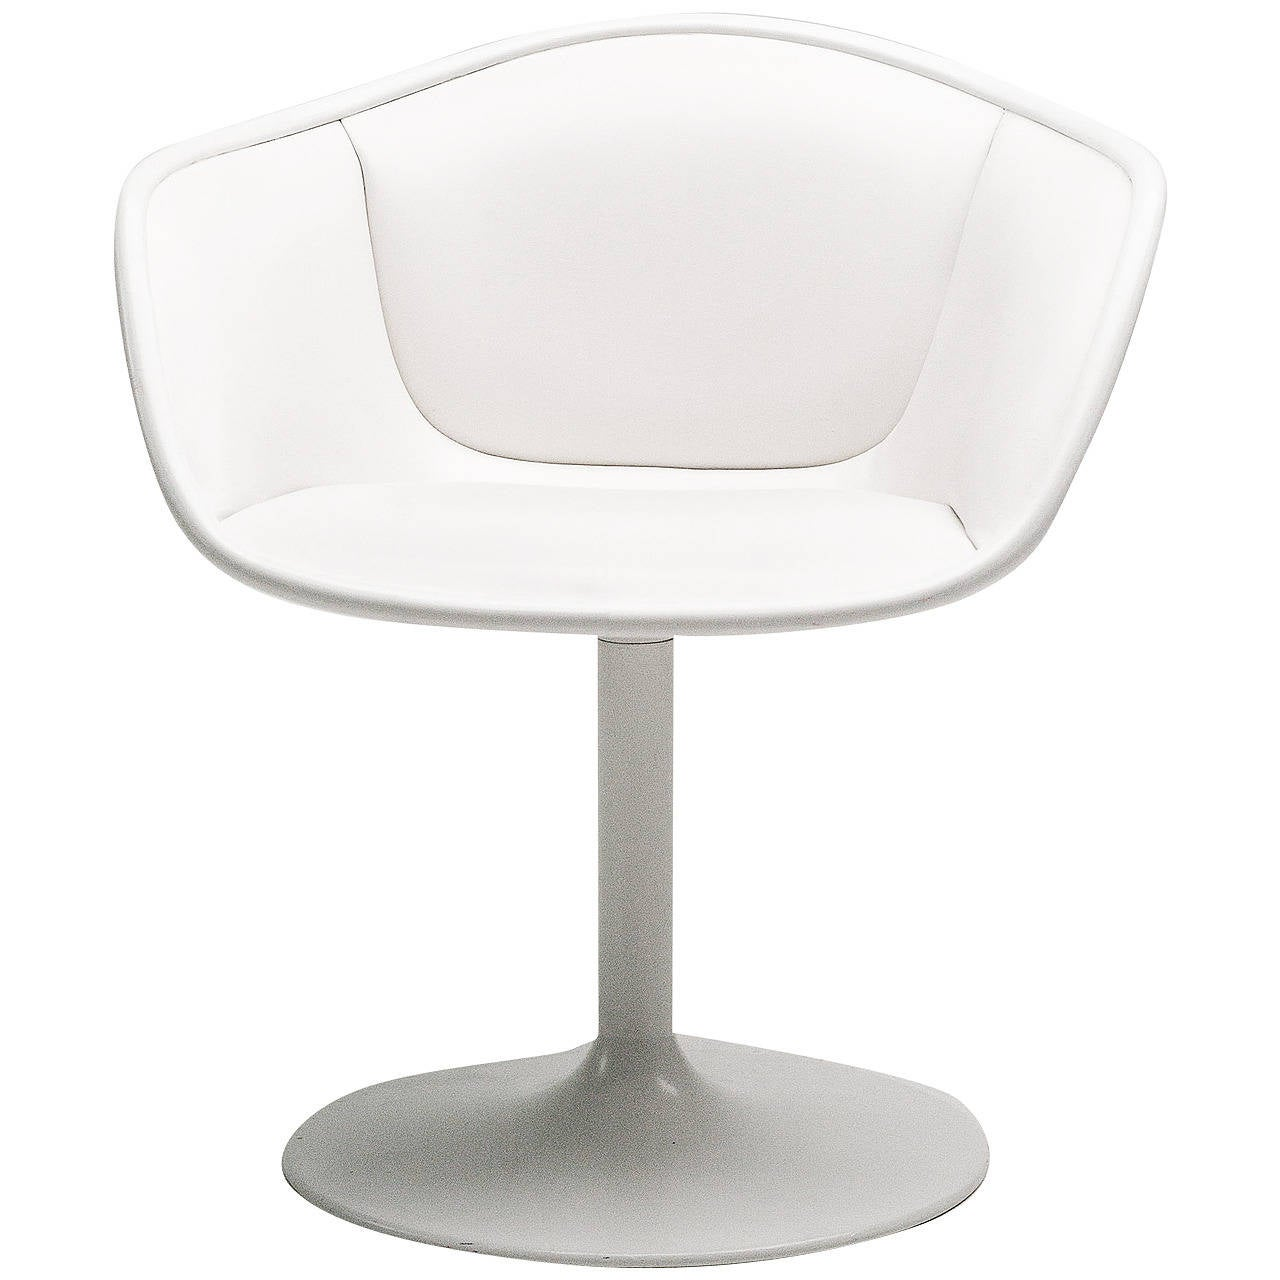 Pierre Paulin Armchair Model 7800 for Artifort, the Netherlands 1